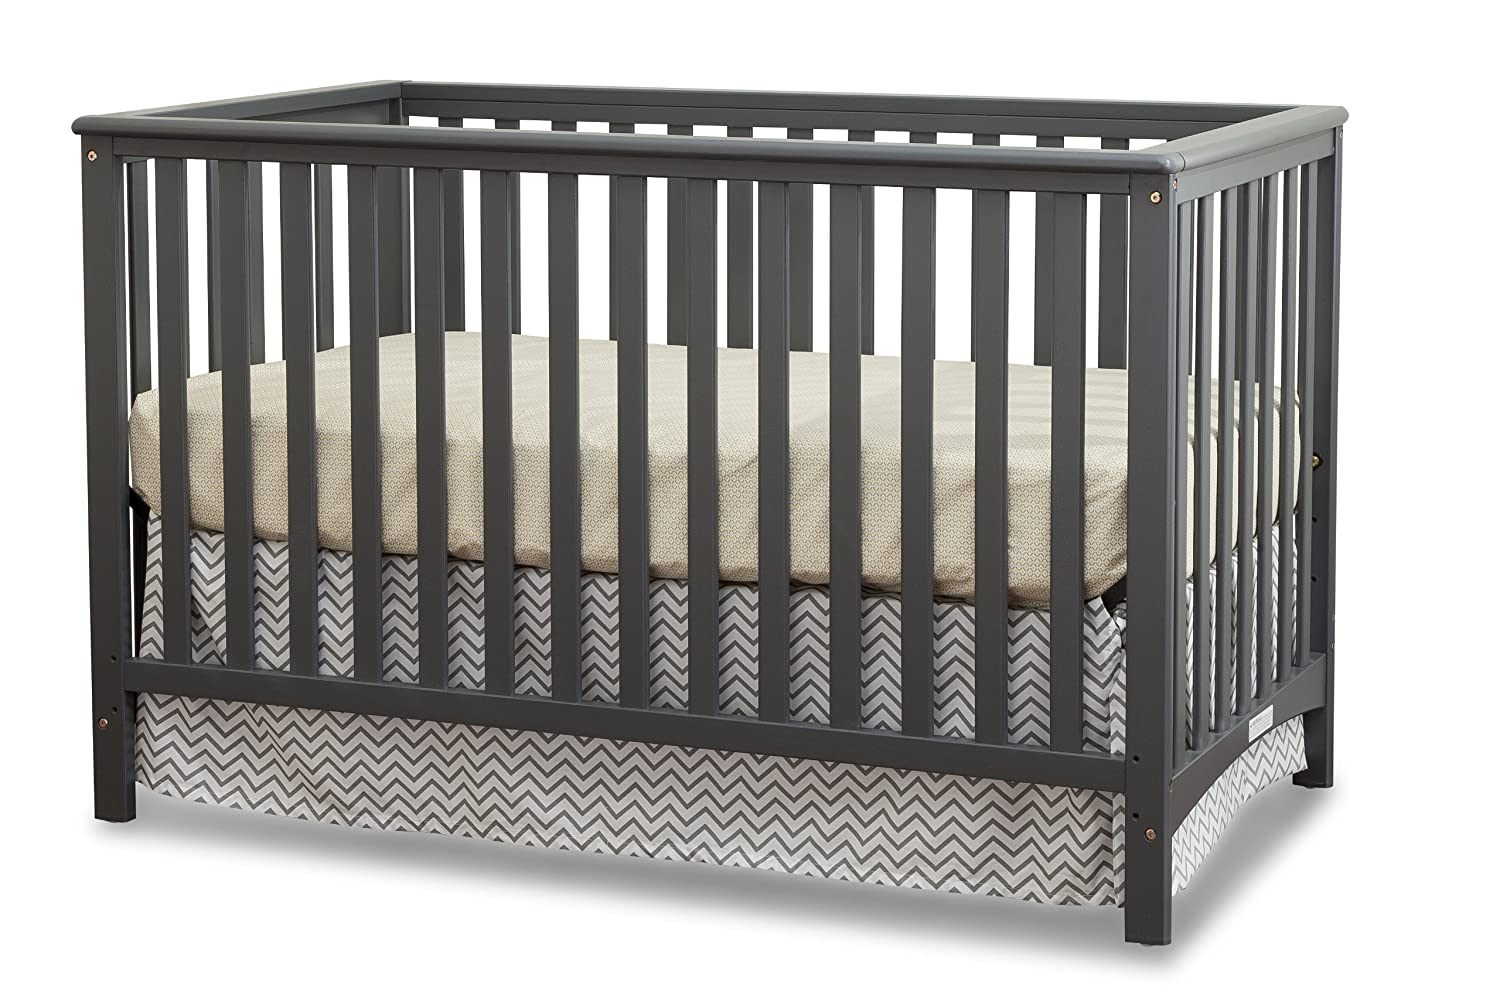 Storkcraft Hillcrest 4-in-1 Convertible Crib, Gray 04520-03G